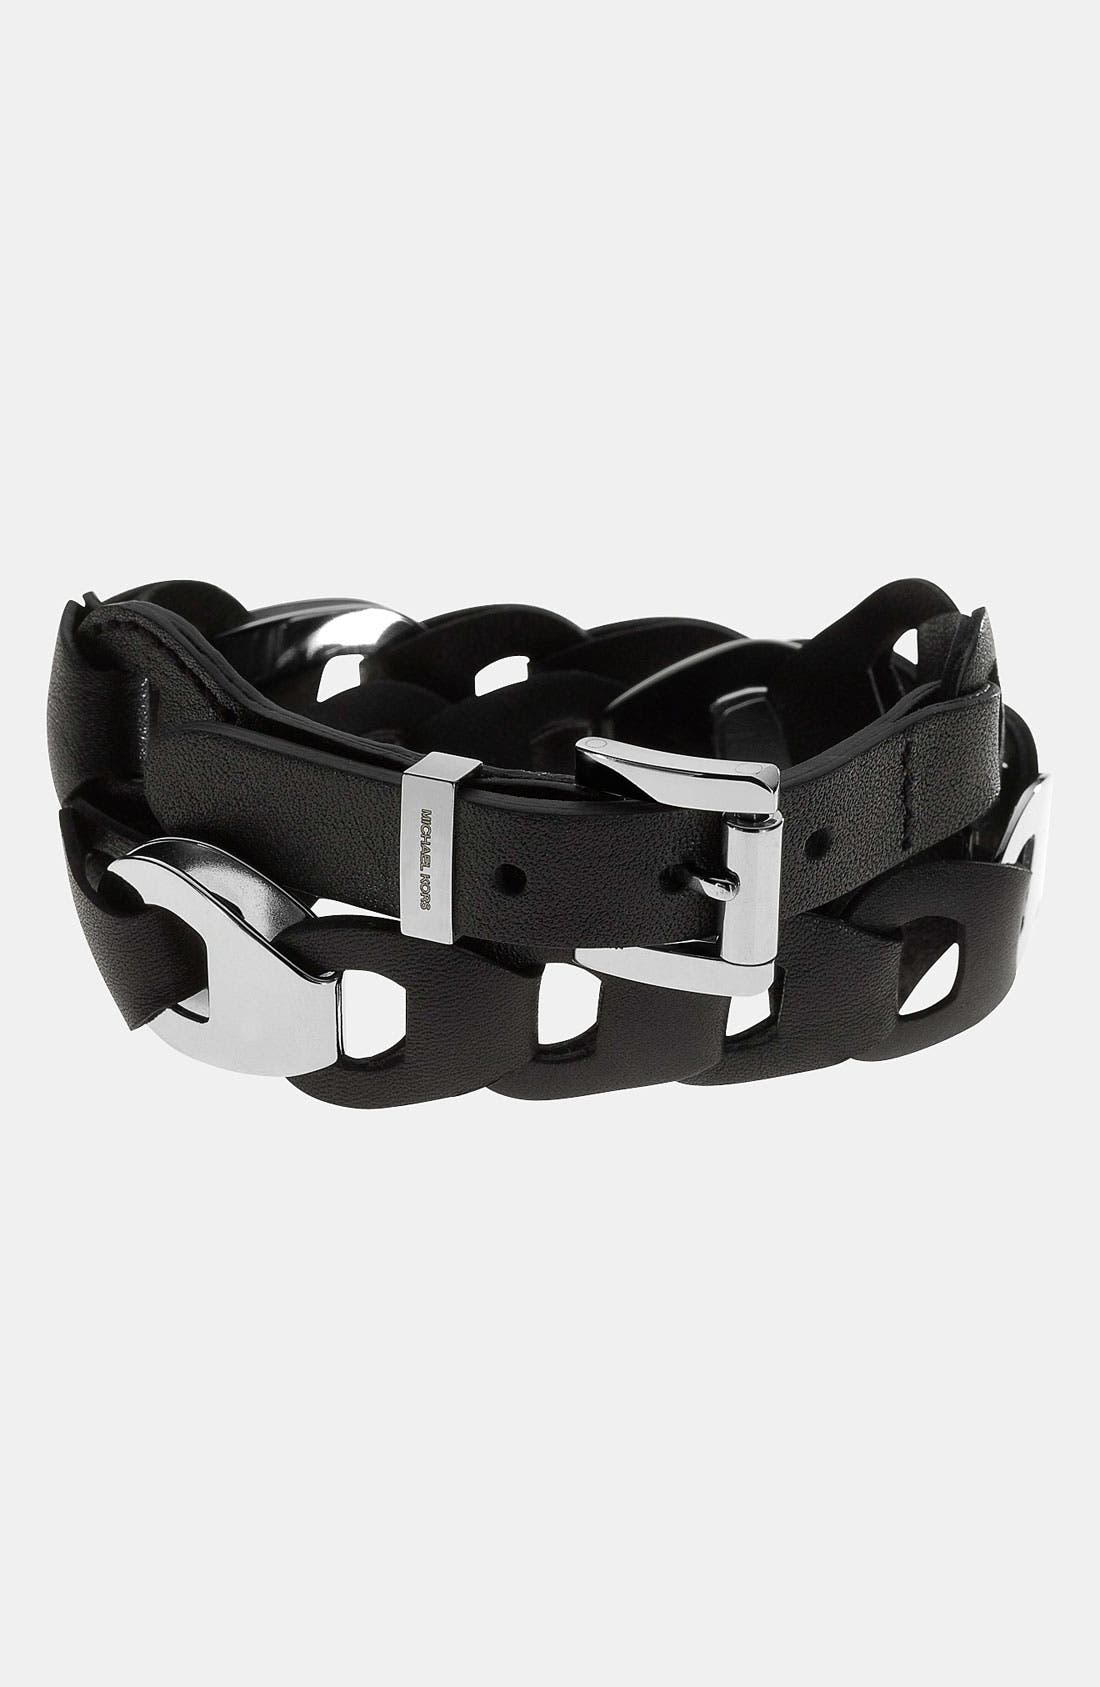 Alternate Image 1 Selected - Michael Kors 'Equestrian Luxury' Leather Wrap Bracelet